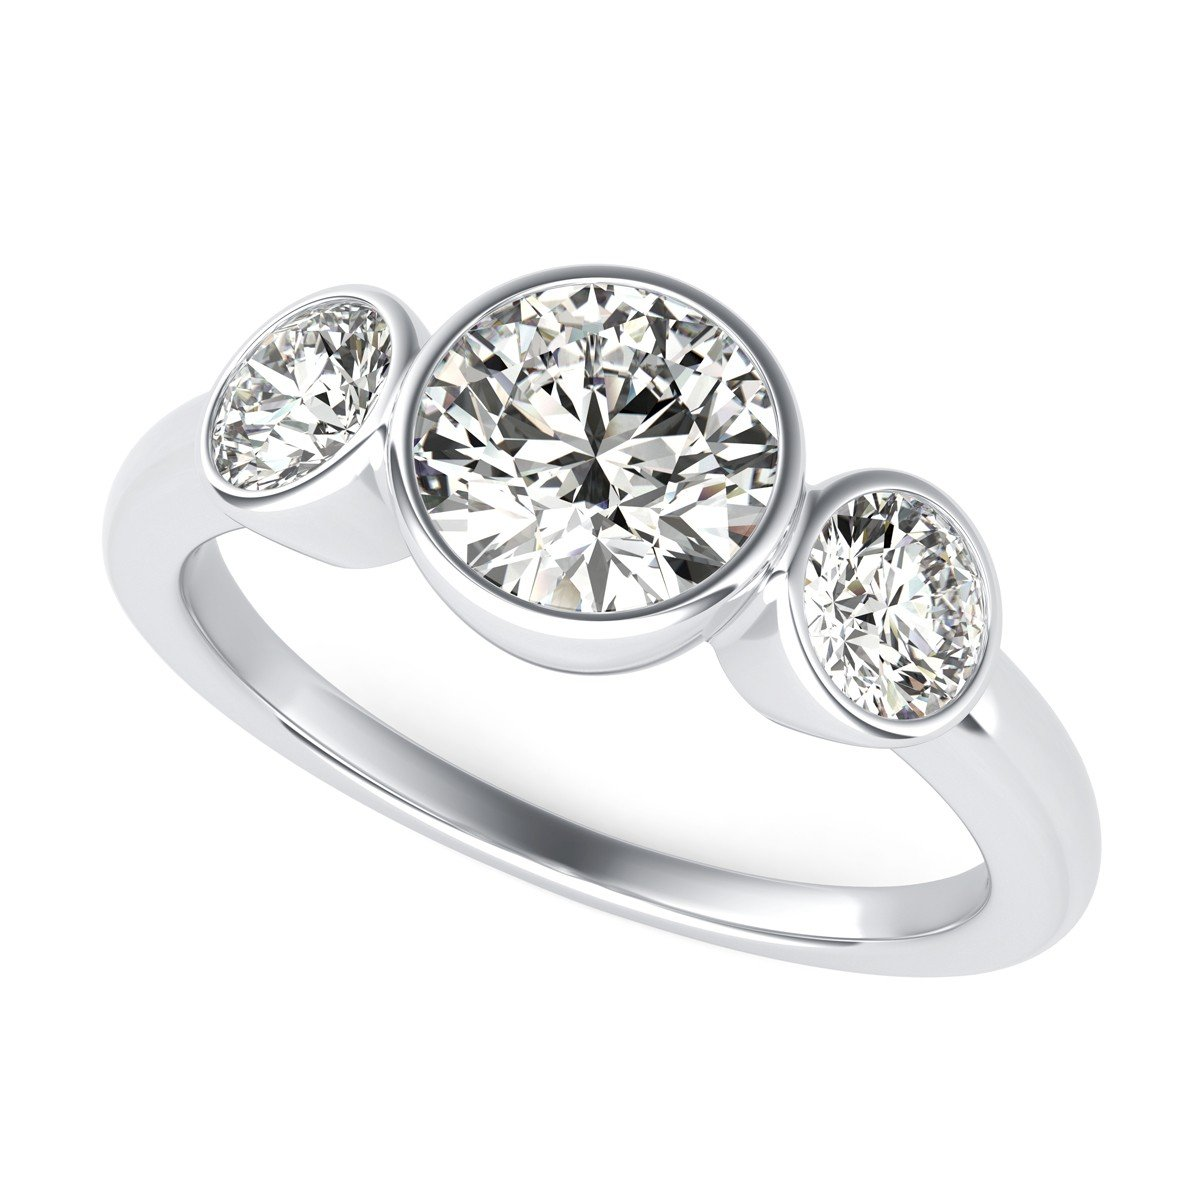 diamond wedding rings nigeria lovely band of ring bands set buy amp engagement fresh three shop